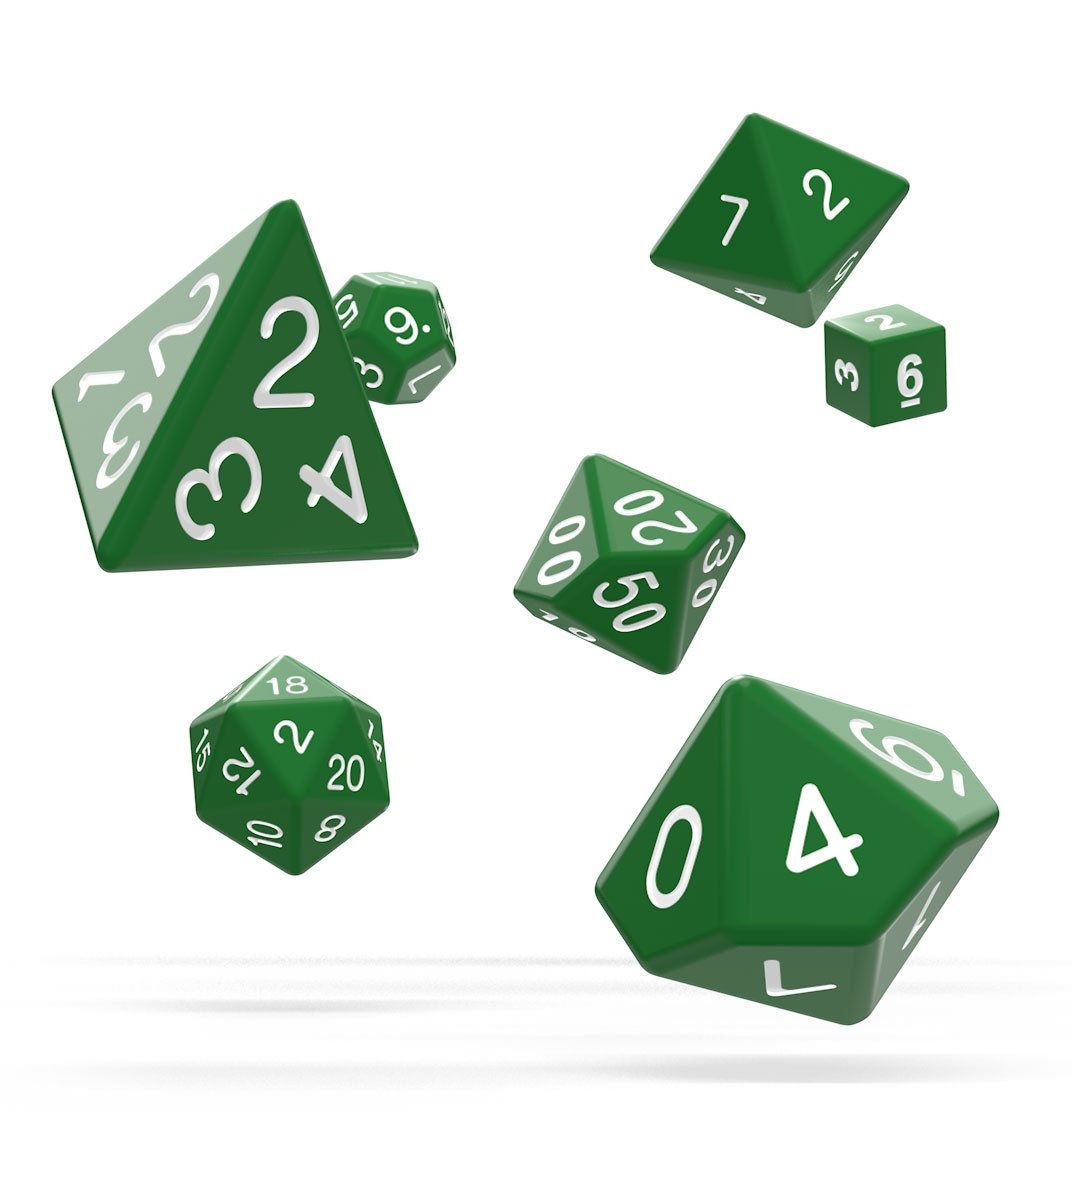 Kocka Set (7) - Oakie Doakie Dice RPG Set Solid - Green